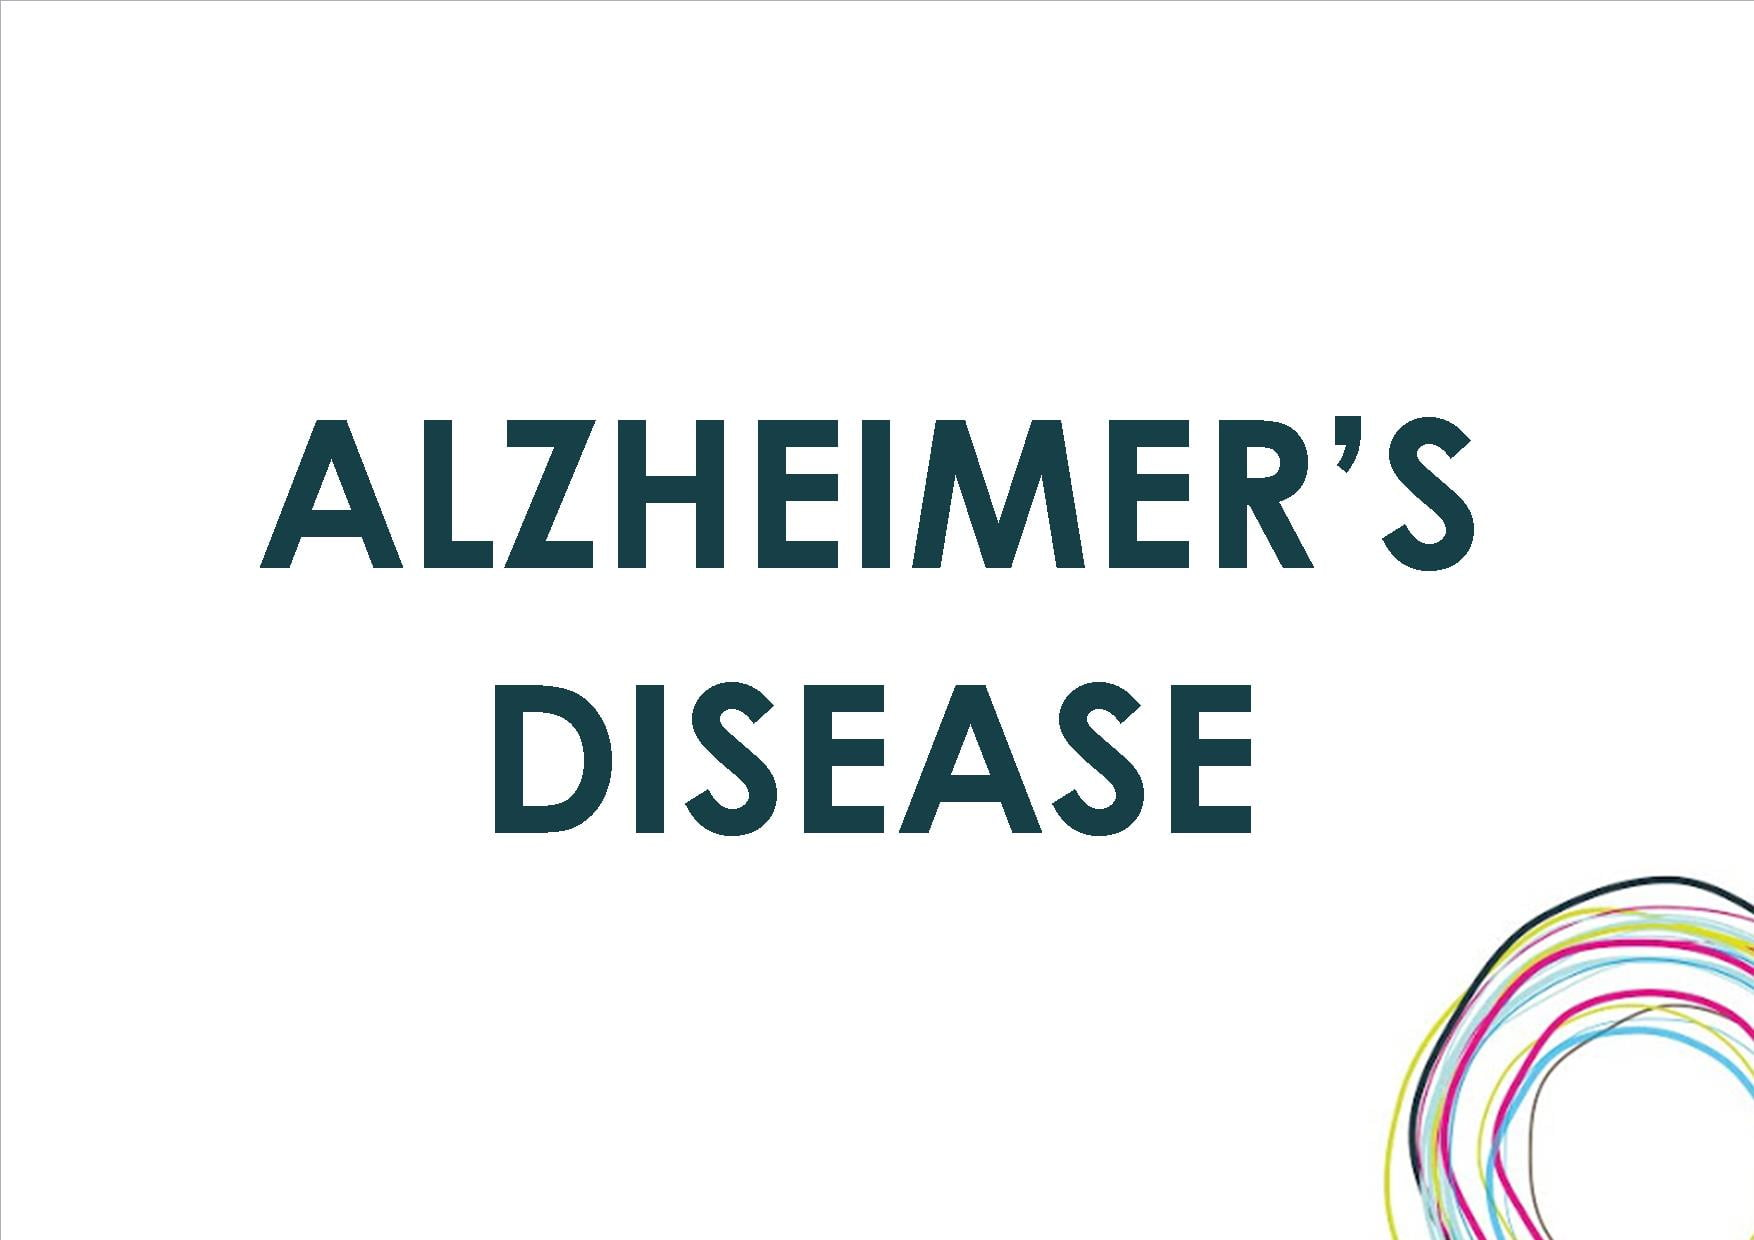 an investigation on alternative cures to alzheimers There are alternative treatments for just about everything, and alzheimer's disease is no exception there are a number of herbal remedies and dietary supplements on the market that claim to boost memory and help delay dementia symptoms.